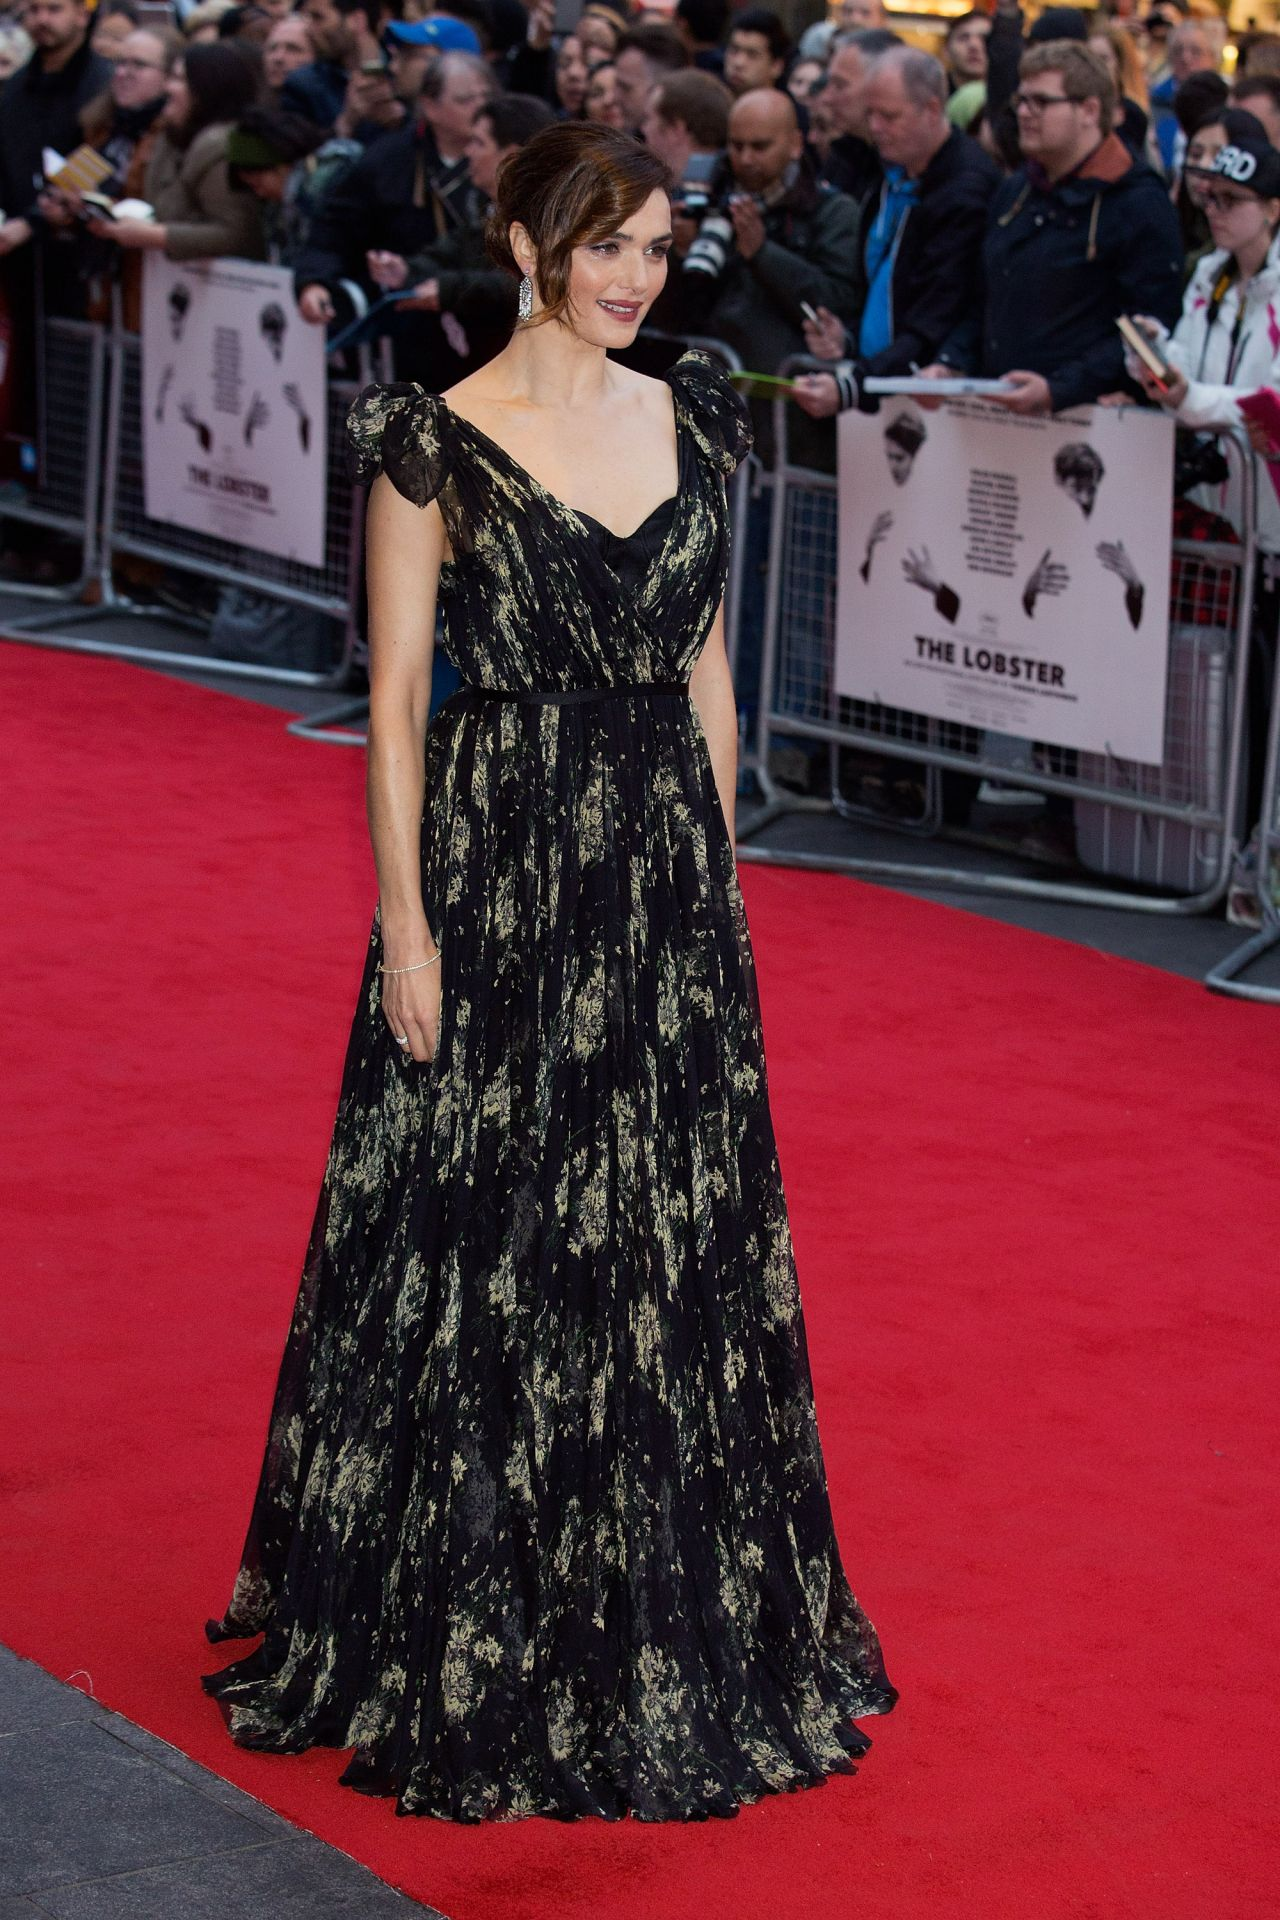 rachel-weisz-the-lobster-dare-gala-bfi-london-film-festival_2